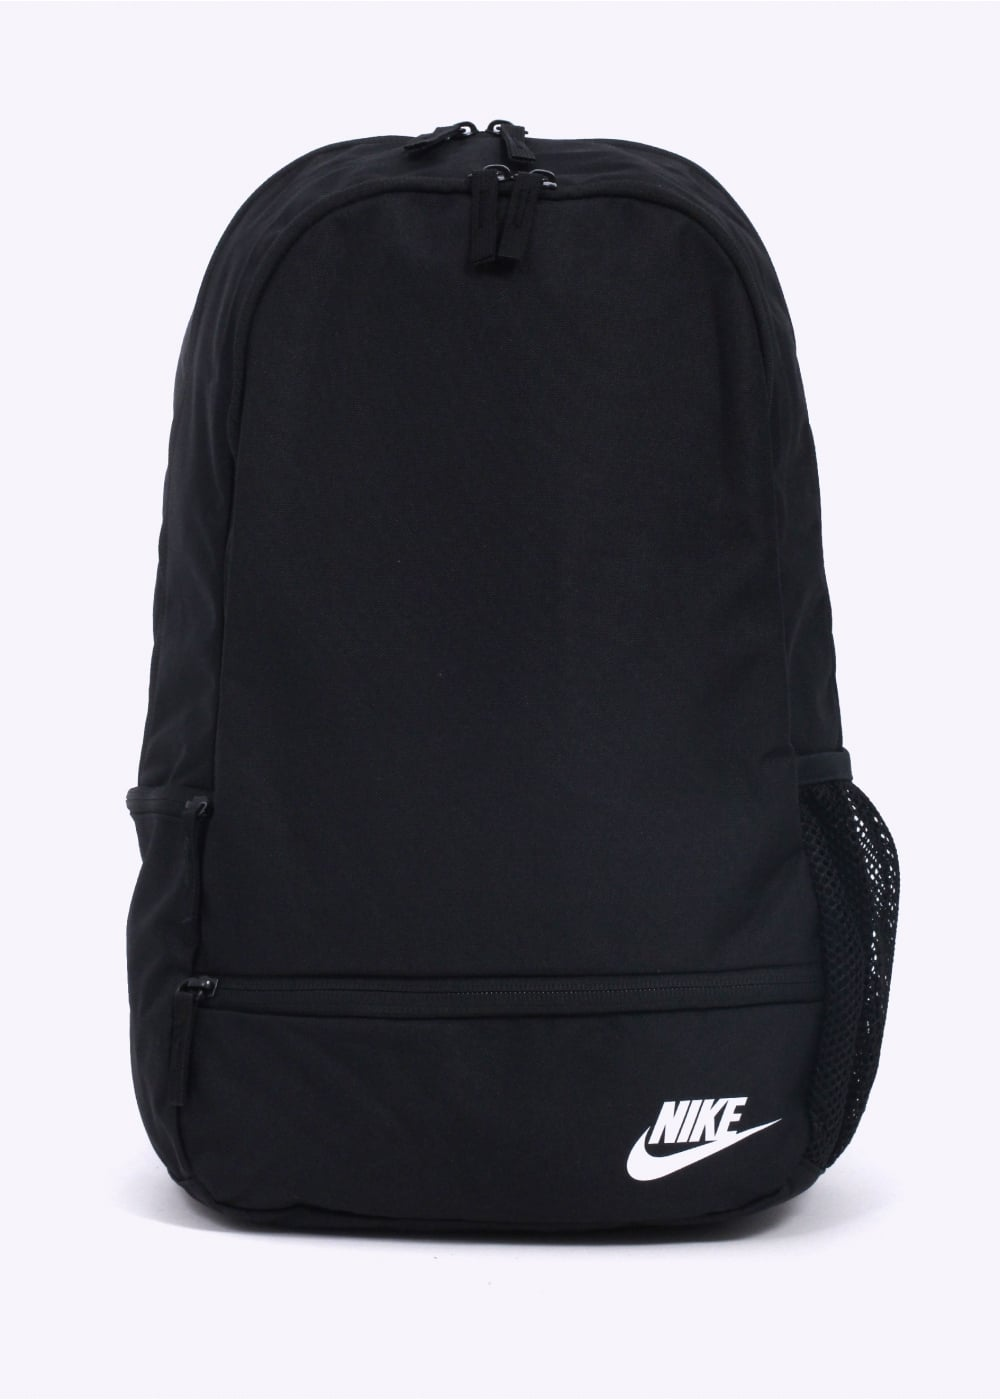 cc7f1c5ee Nike Apparel Classic North Solid Backpack - Black - Bags from Triads UK